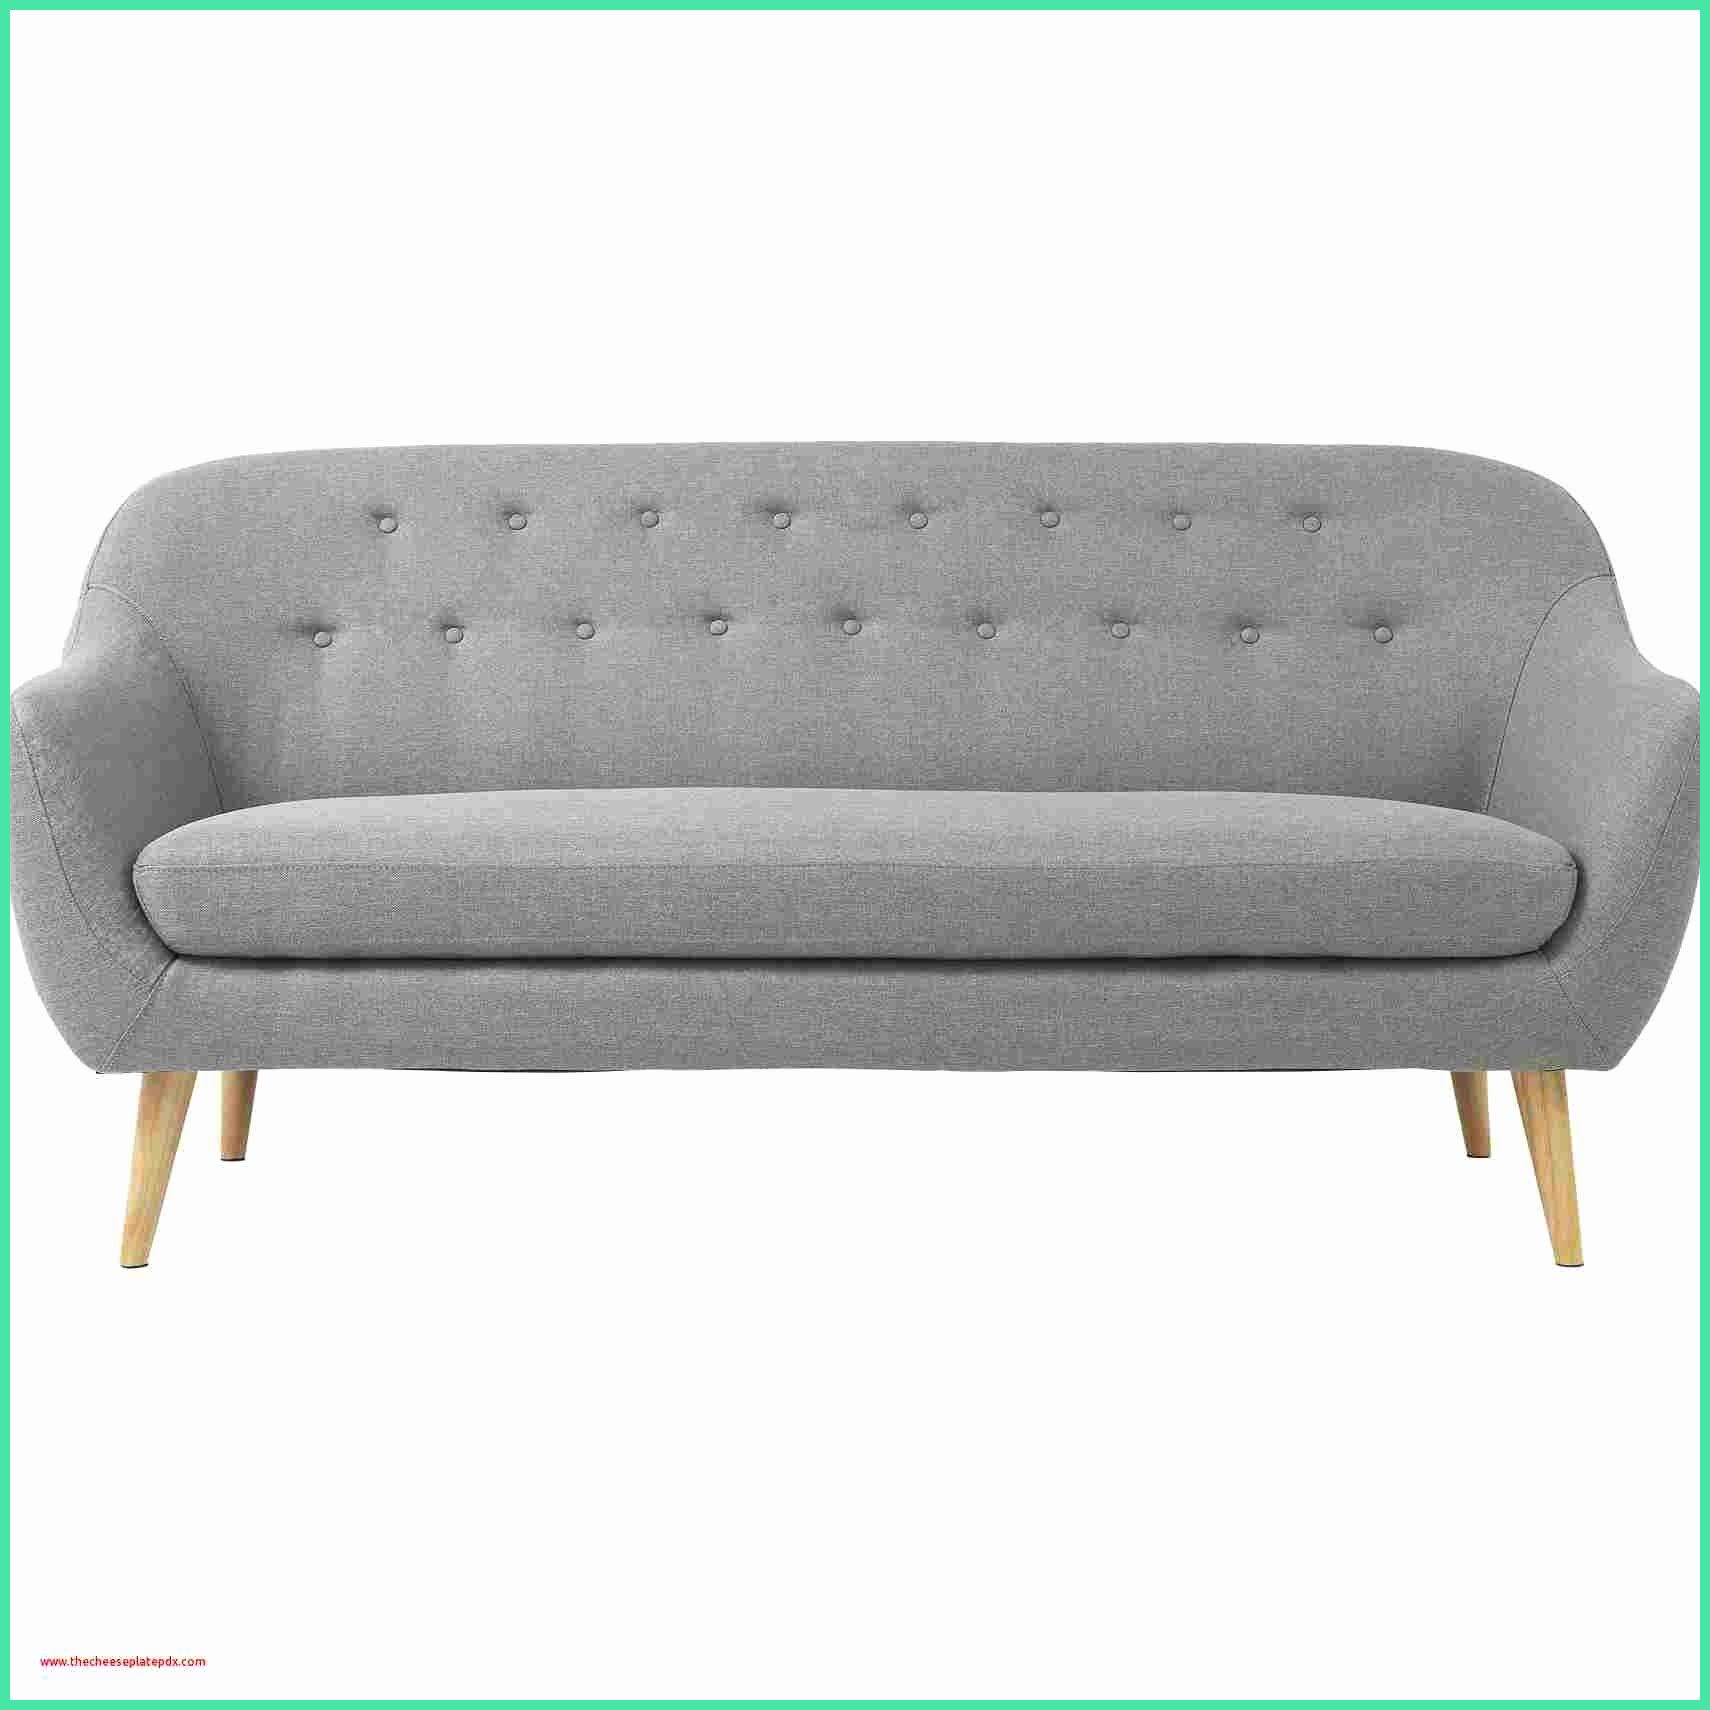 15 Erstaunlich Boxspring Sofa Mit Schlaffunktion Sofa Furniture Home Decor